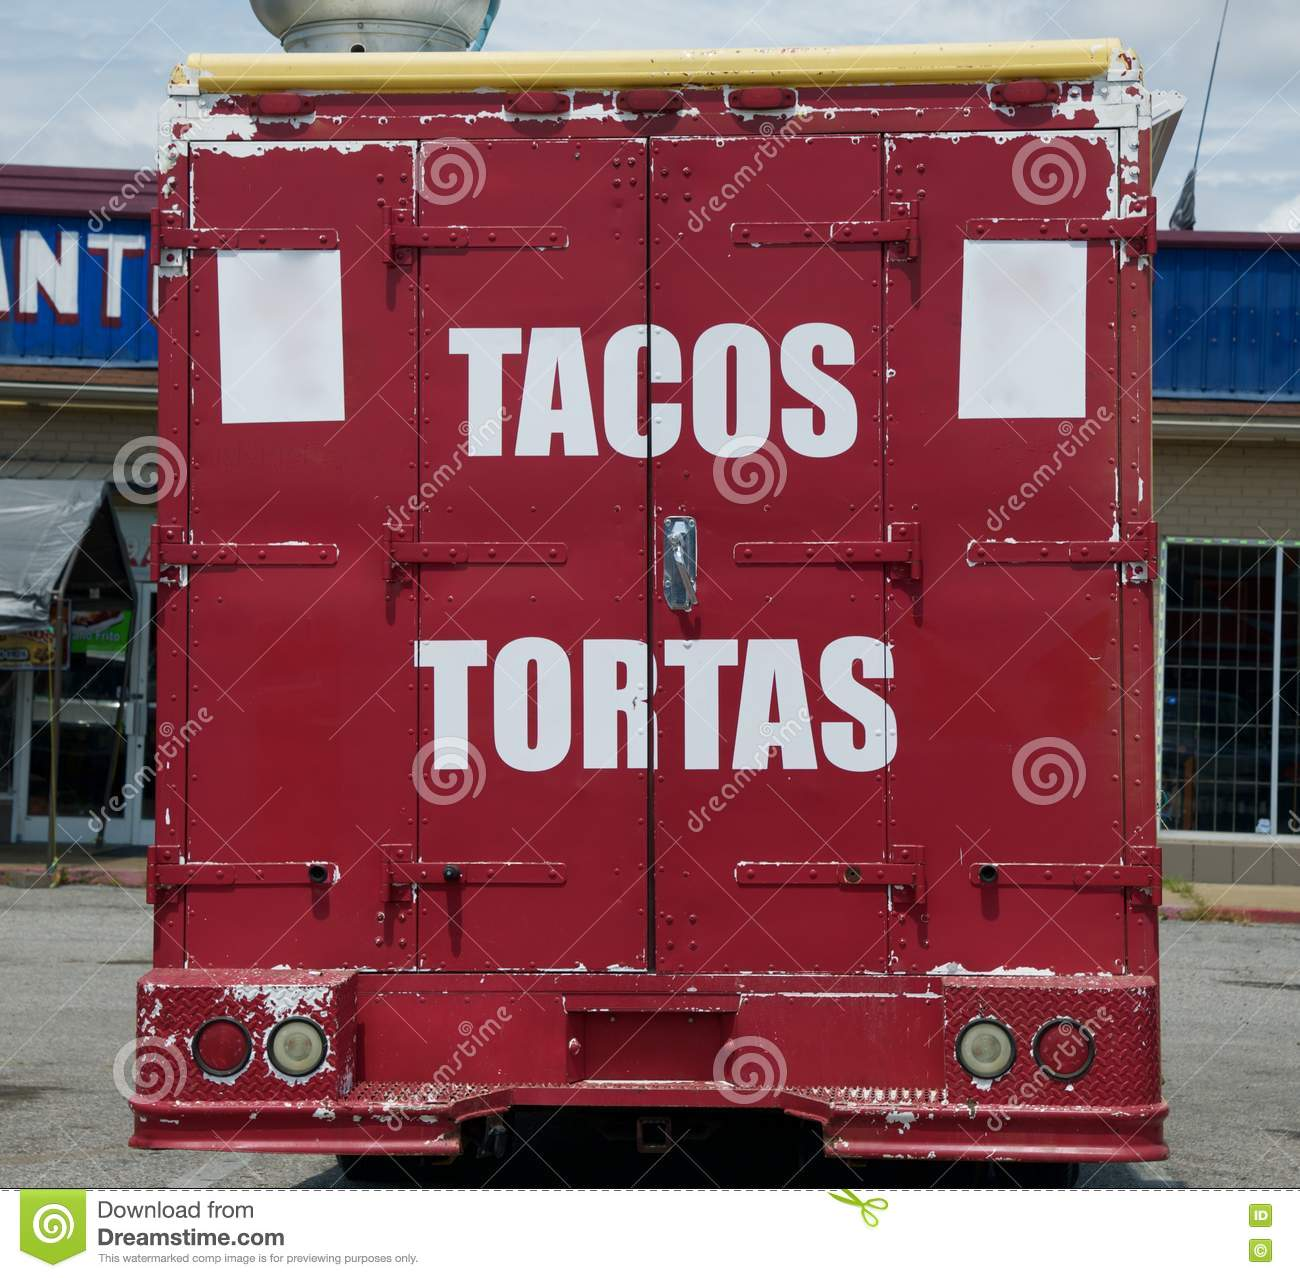 Tacos and Tortas Food Truck